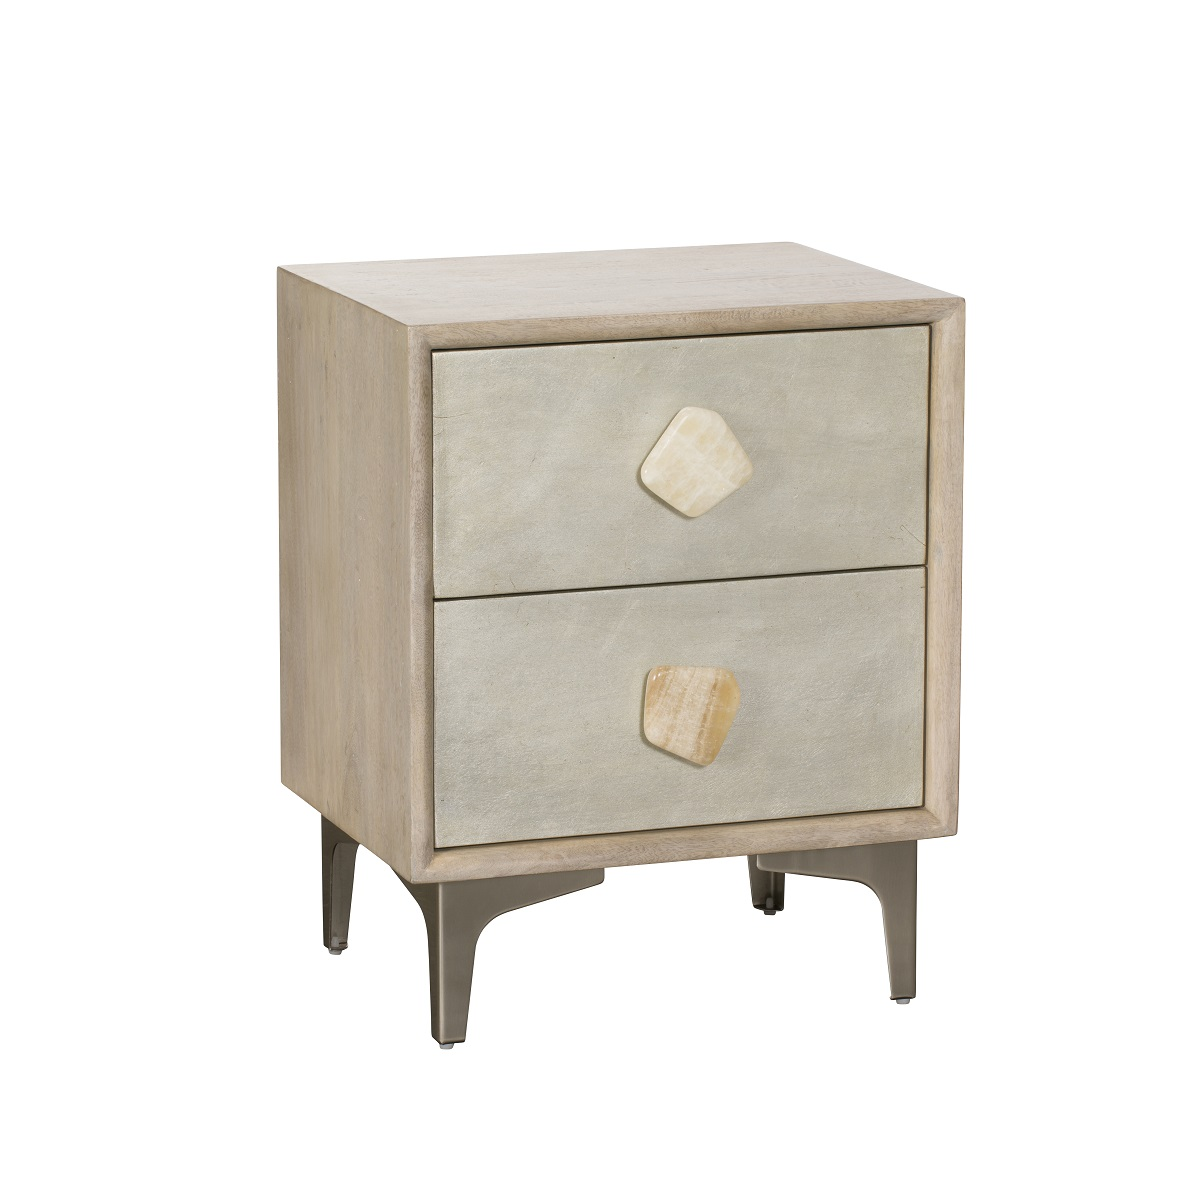 Adelaide 2 Drawer Bedside Locker